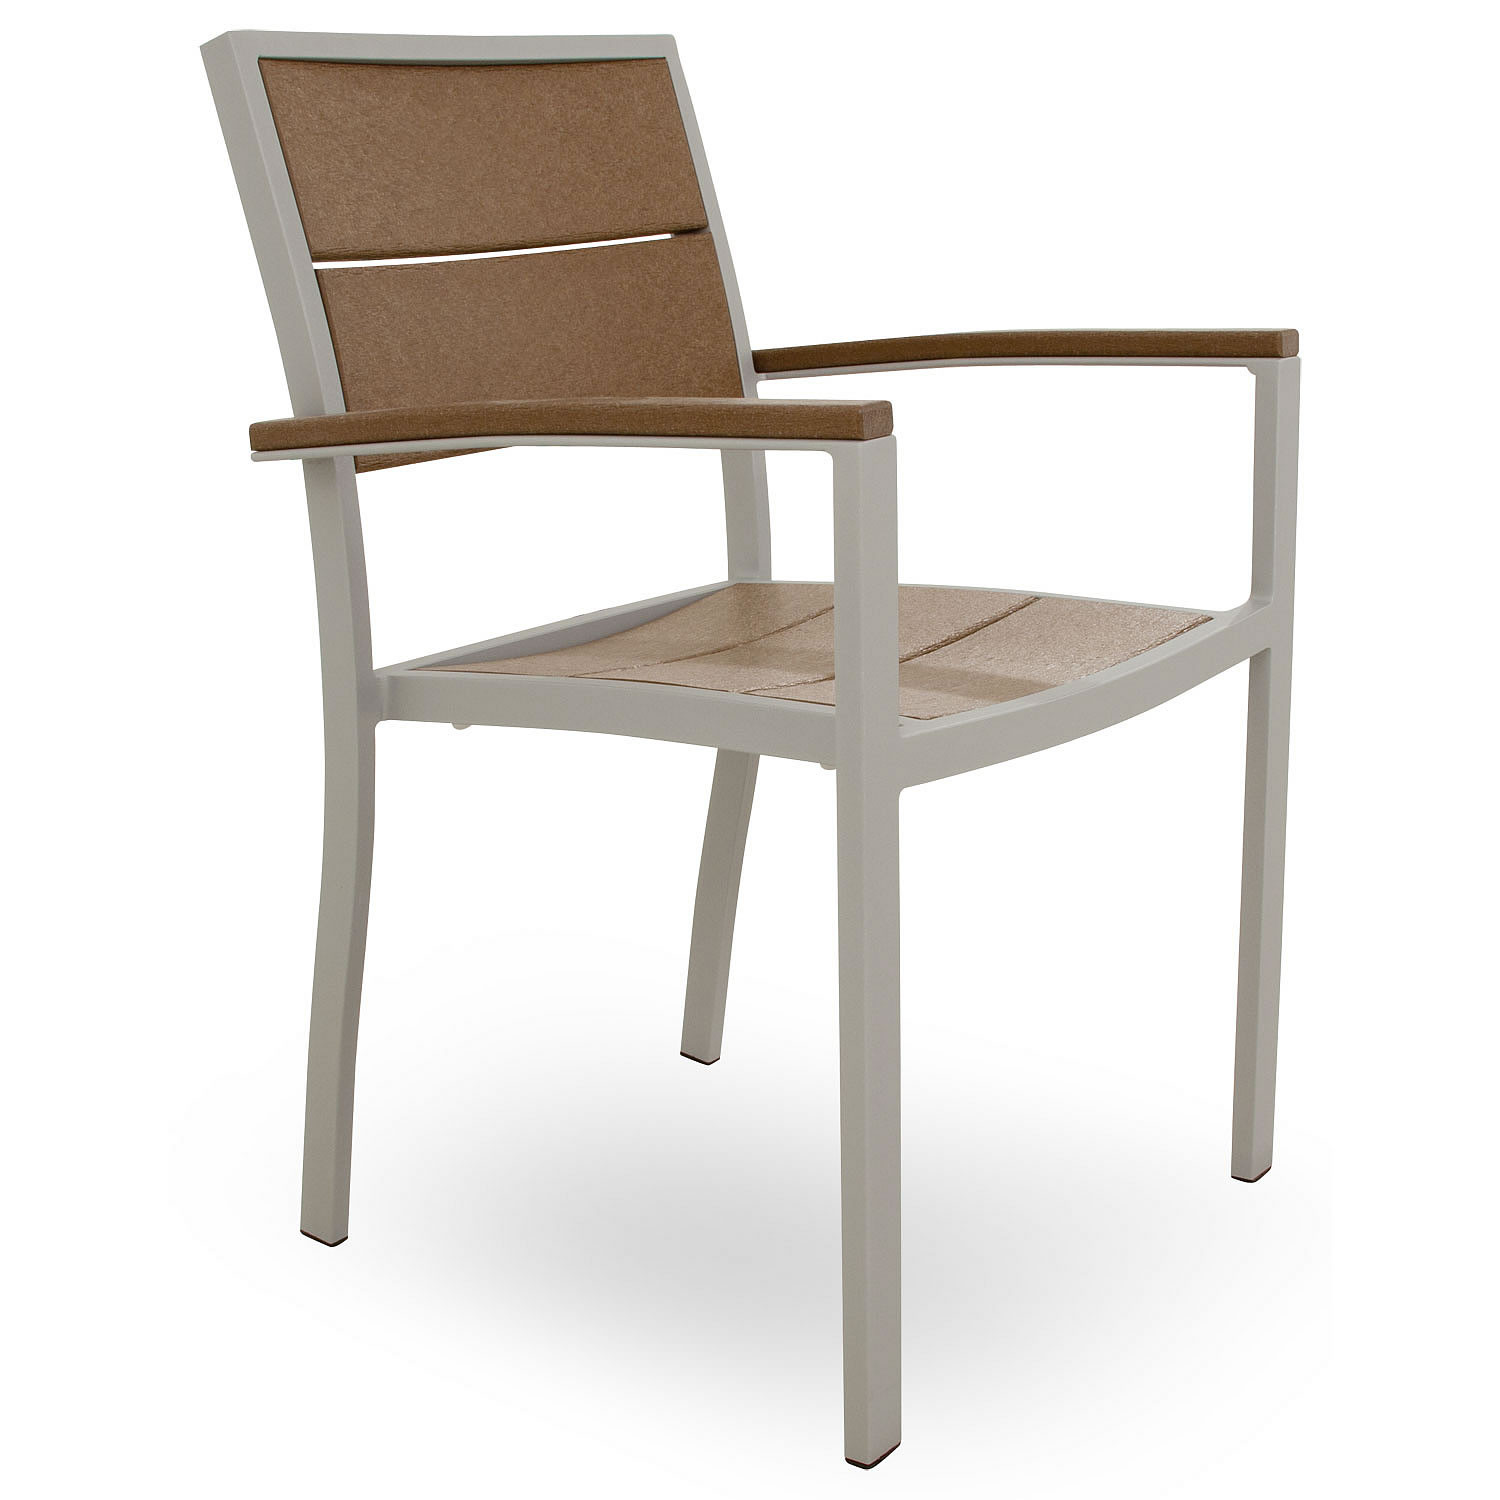 Trex® Outdoor Furniture Surf City Dining Arm Chair